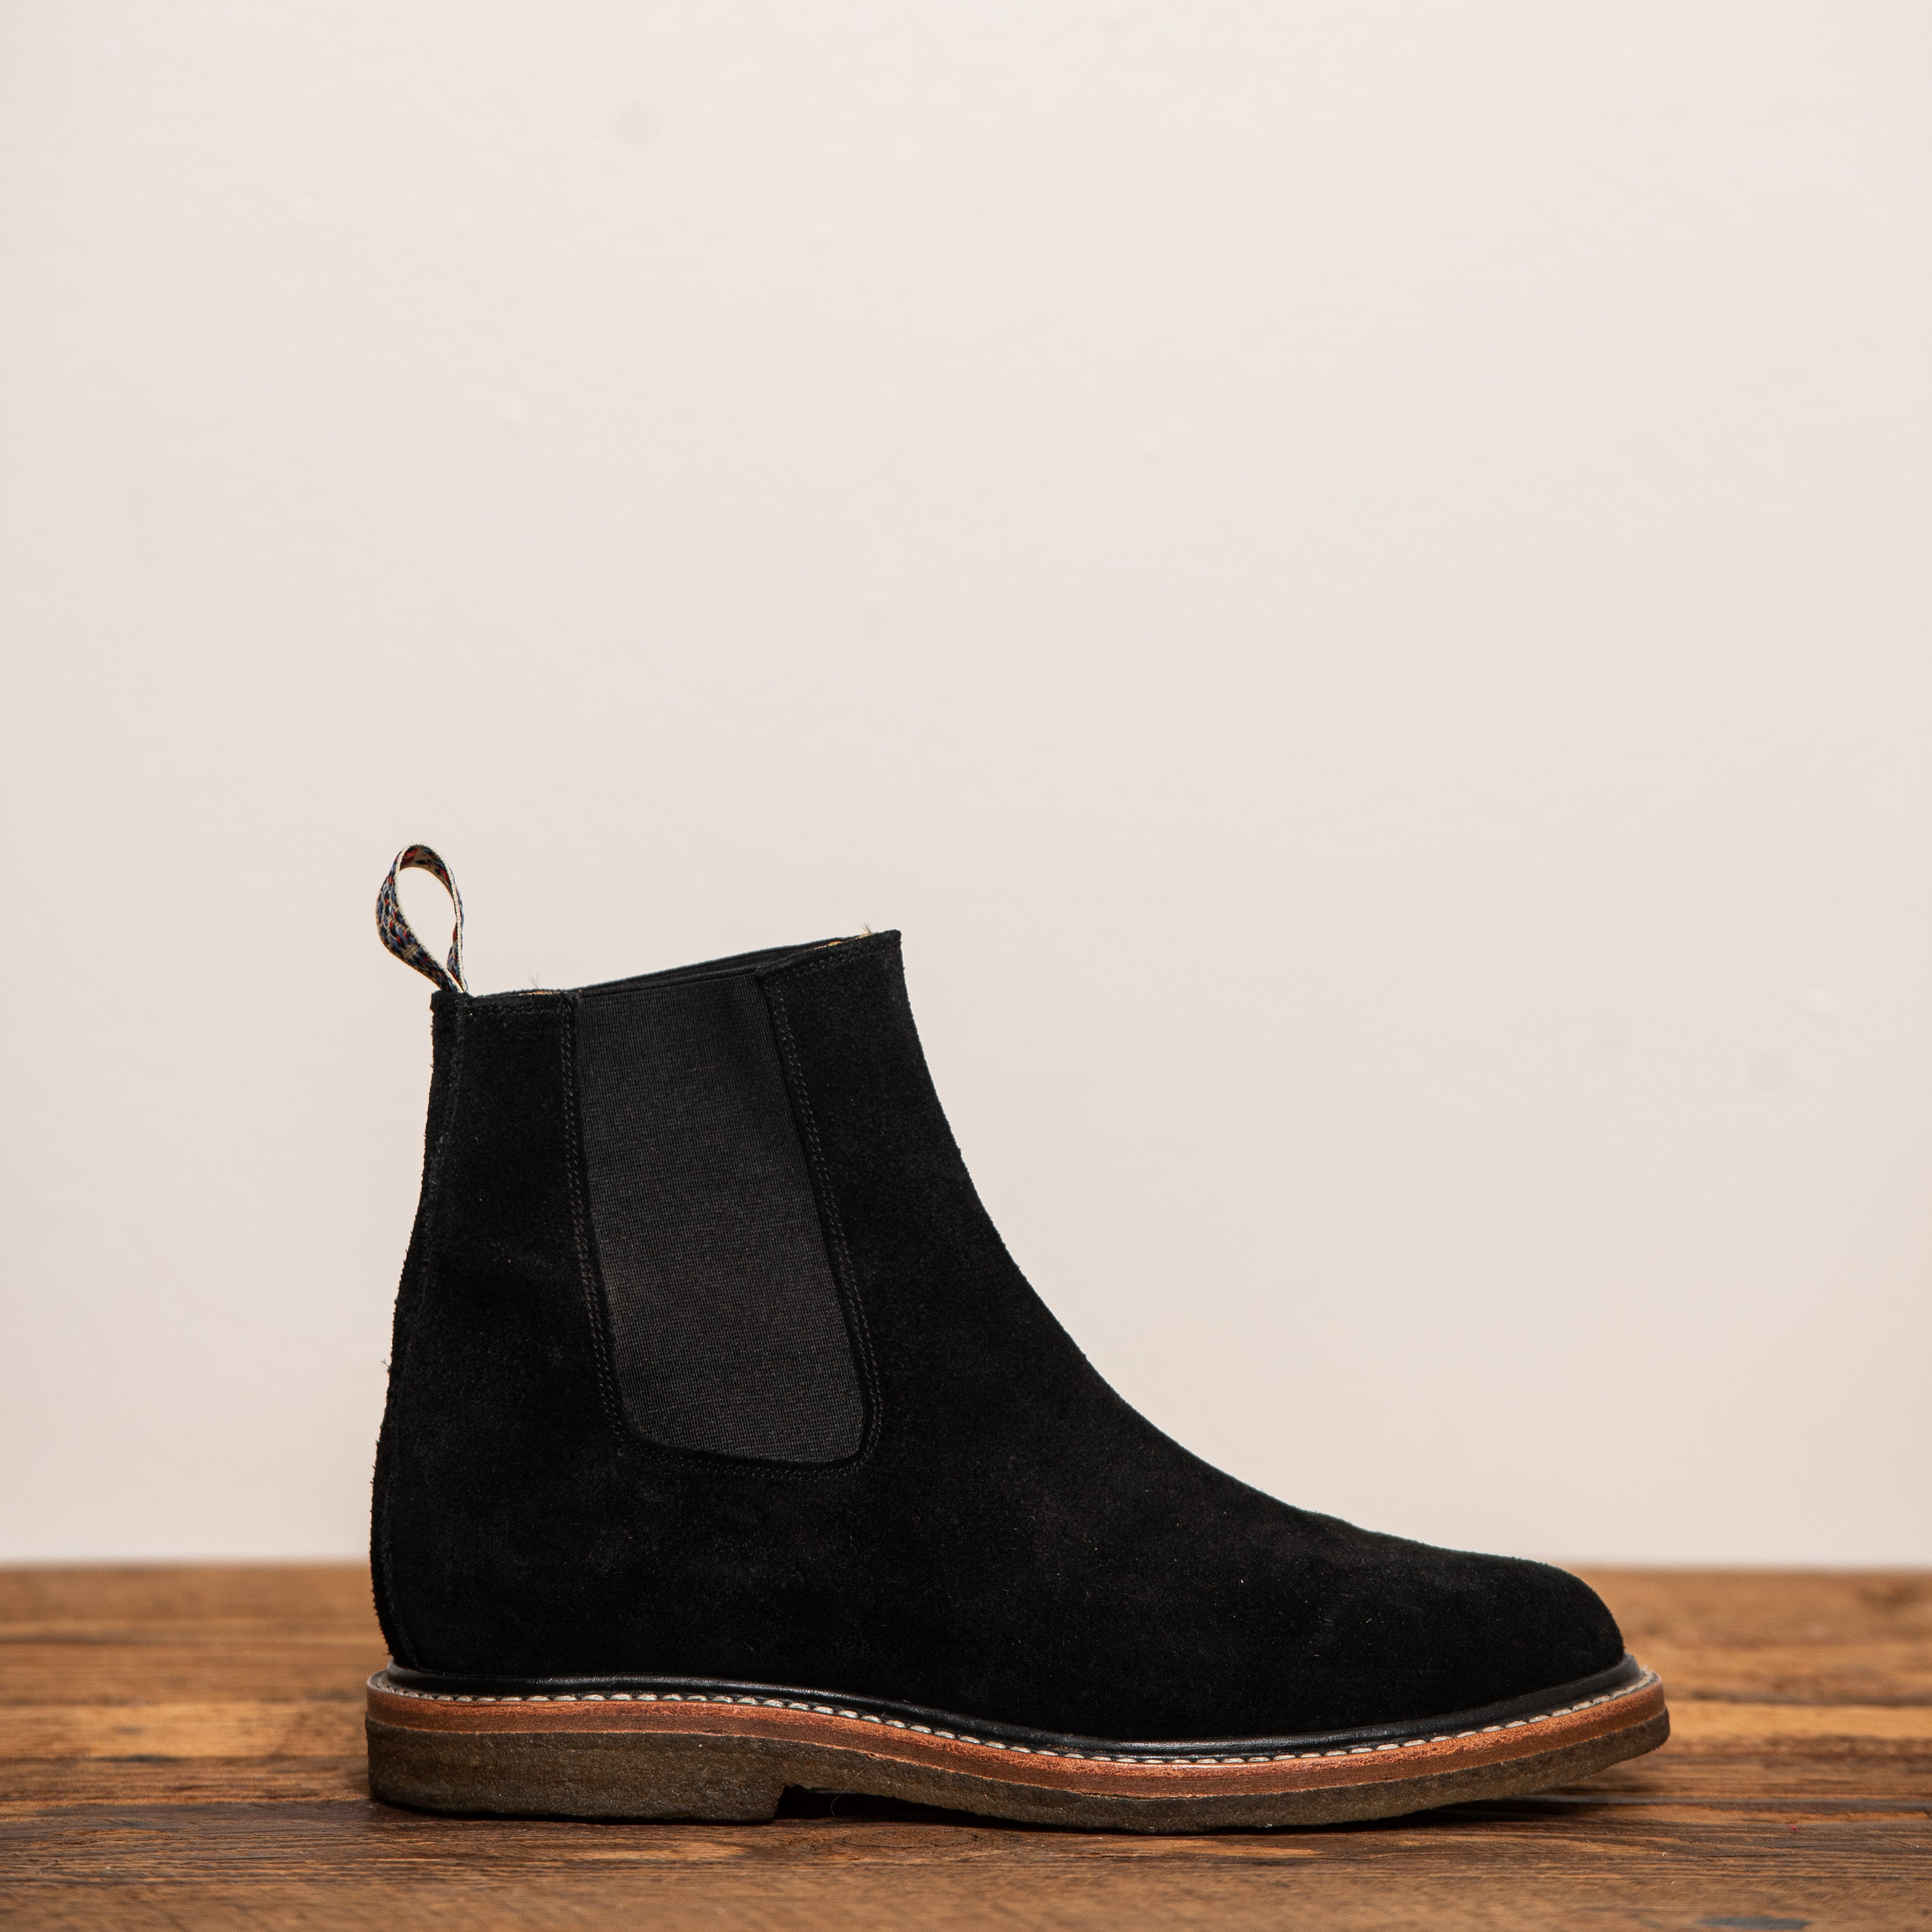 Unmarked Black Suede Chelsea